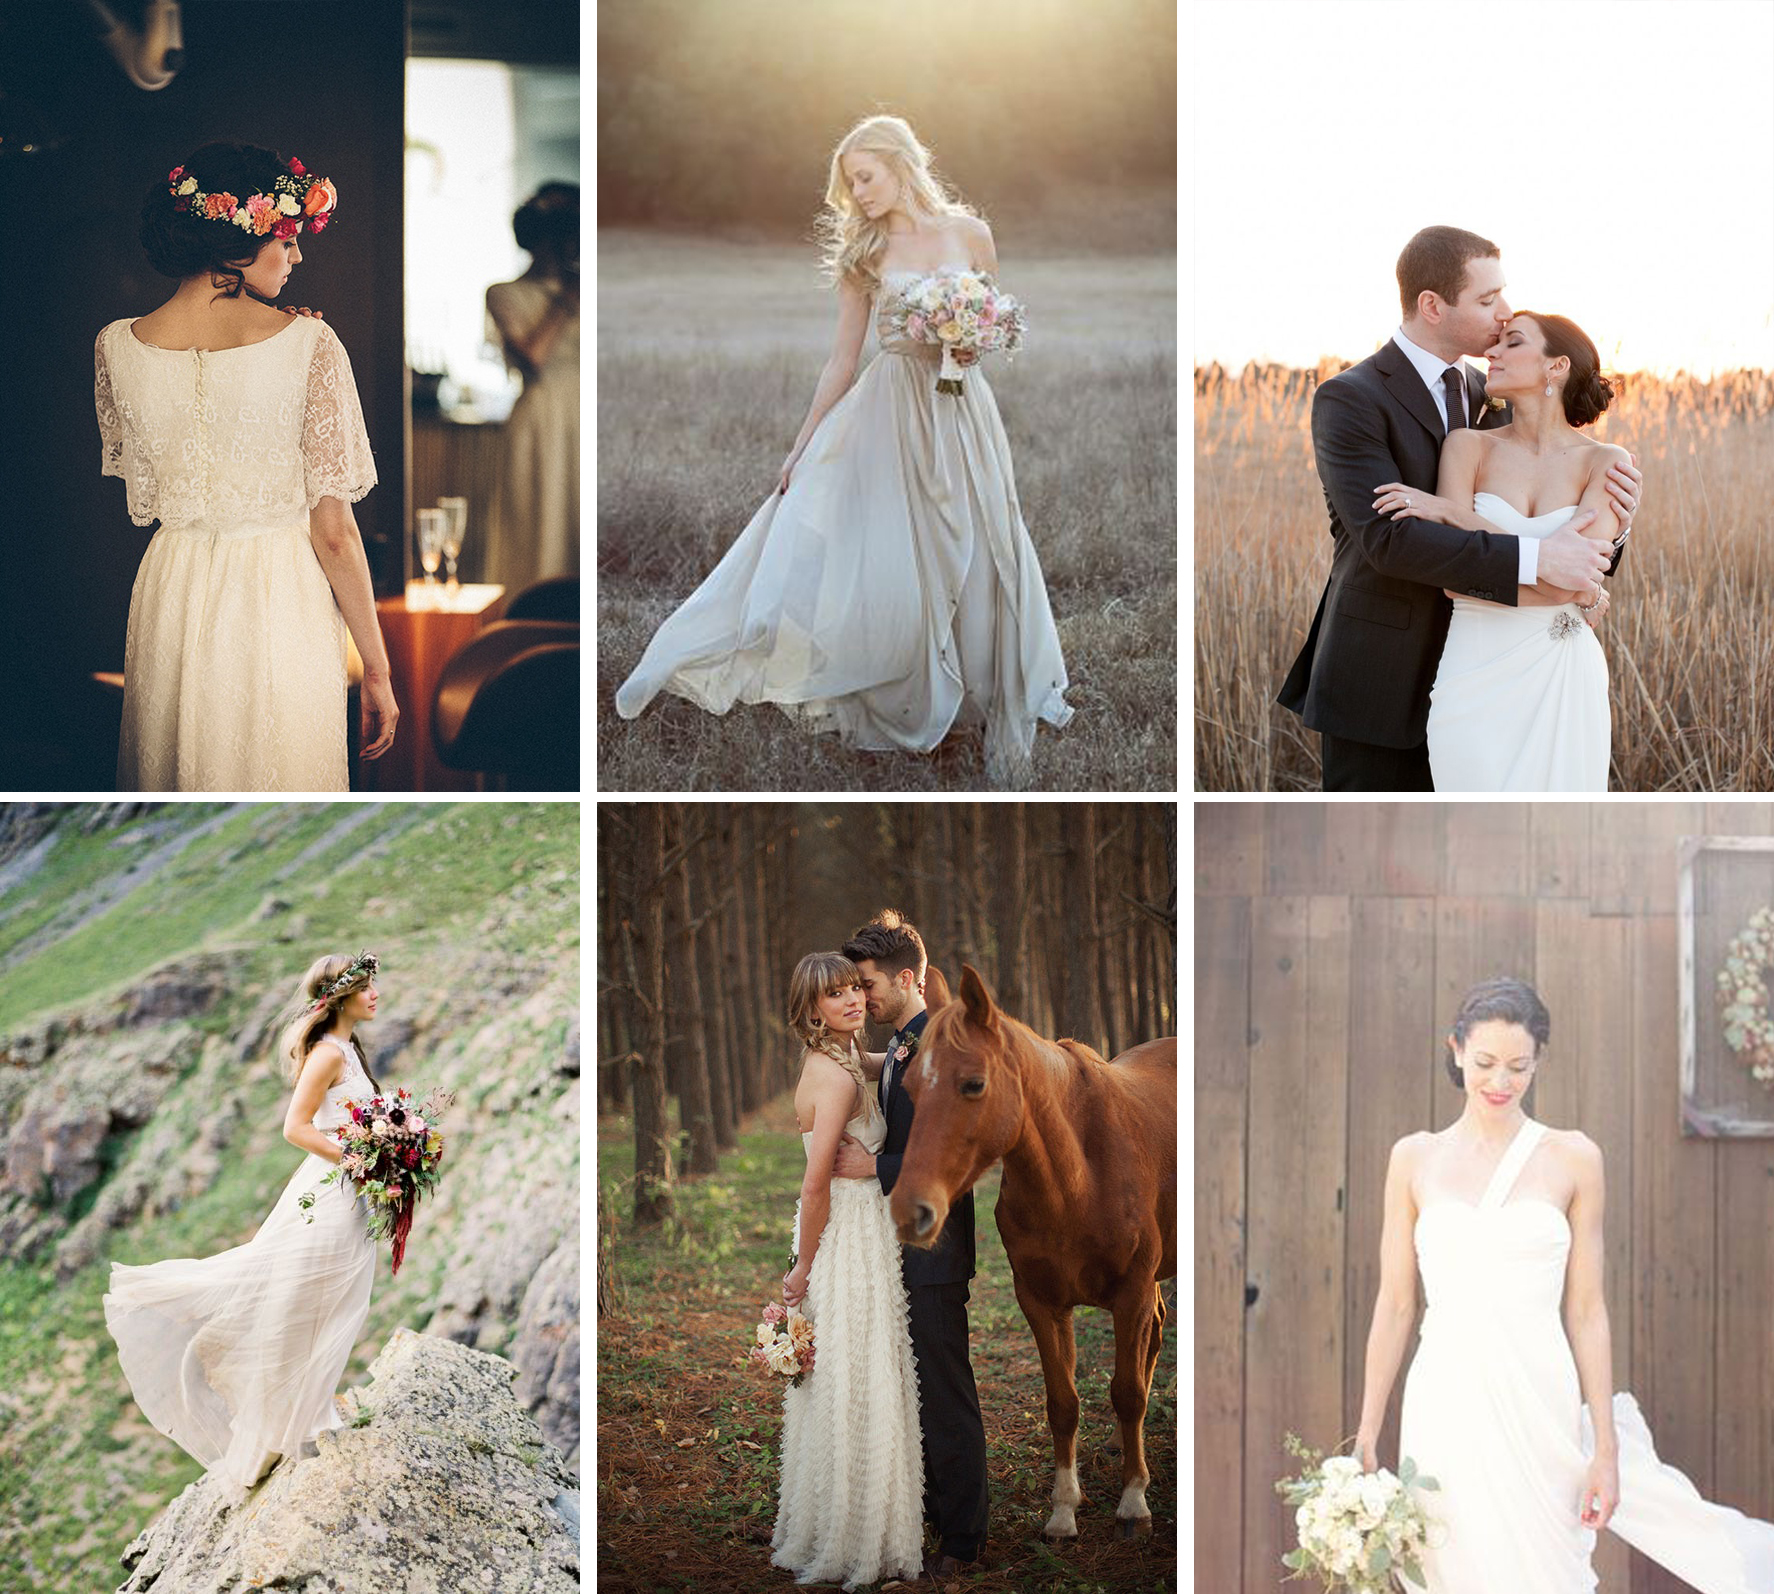 Watch The Rustic Wedding – Part I video